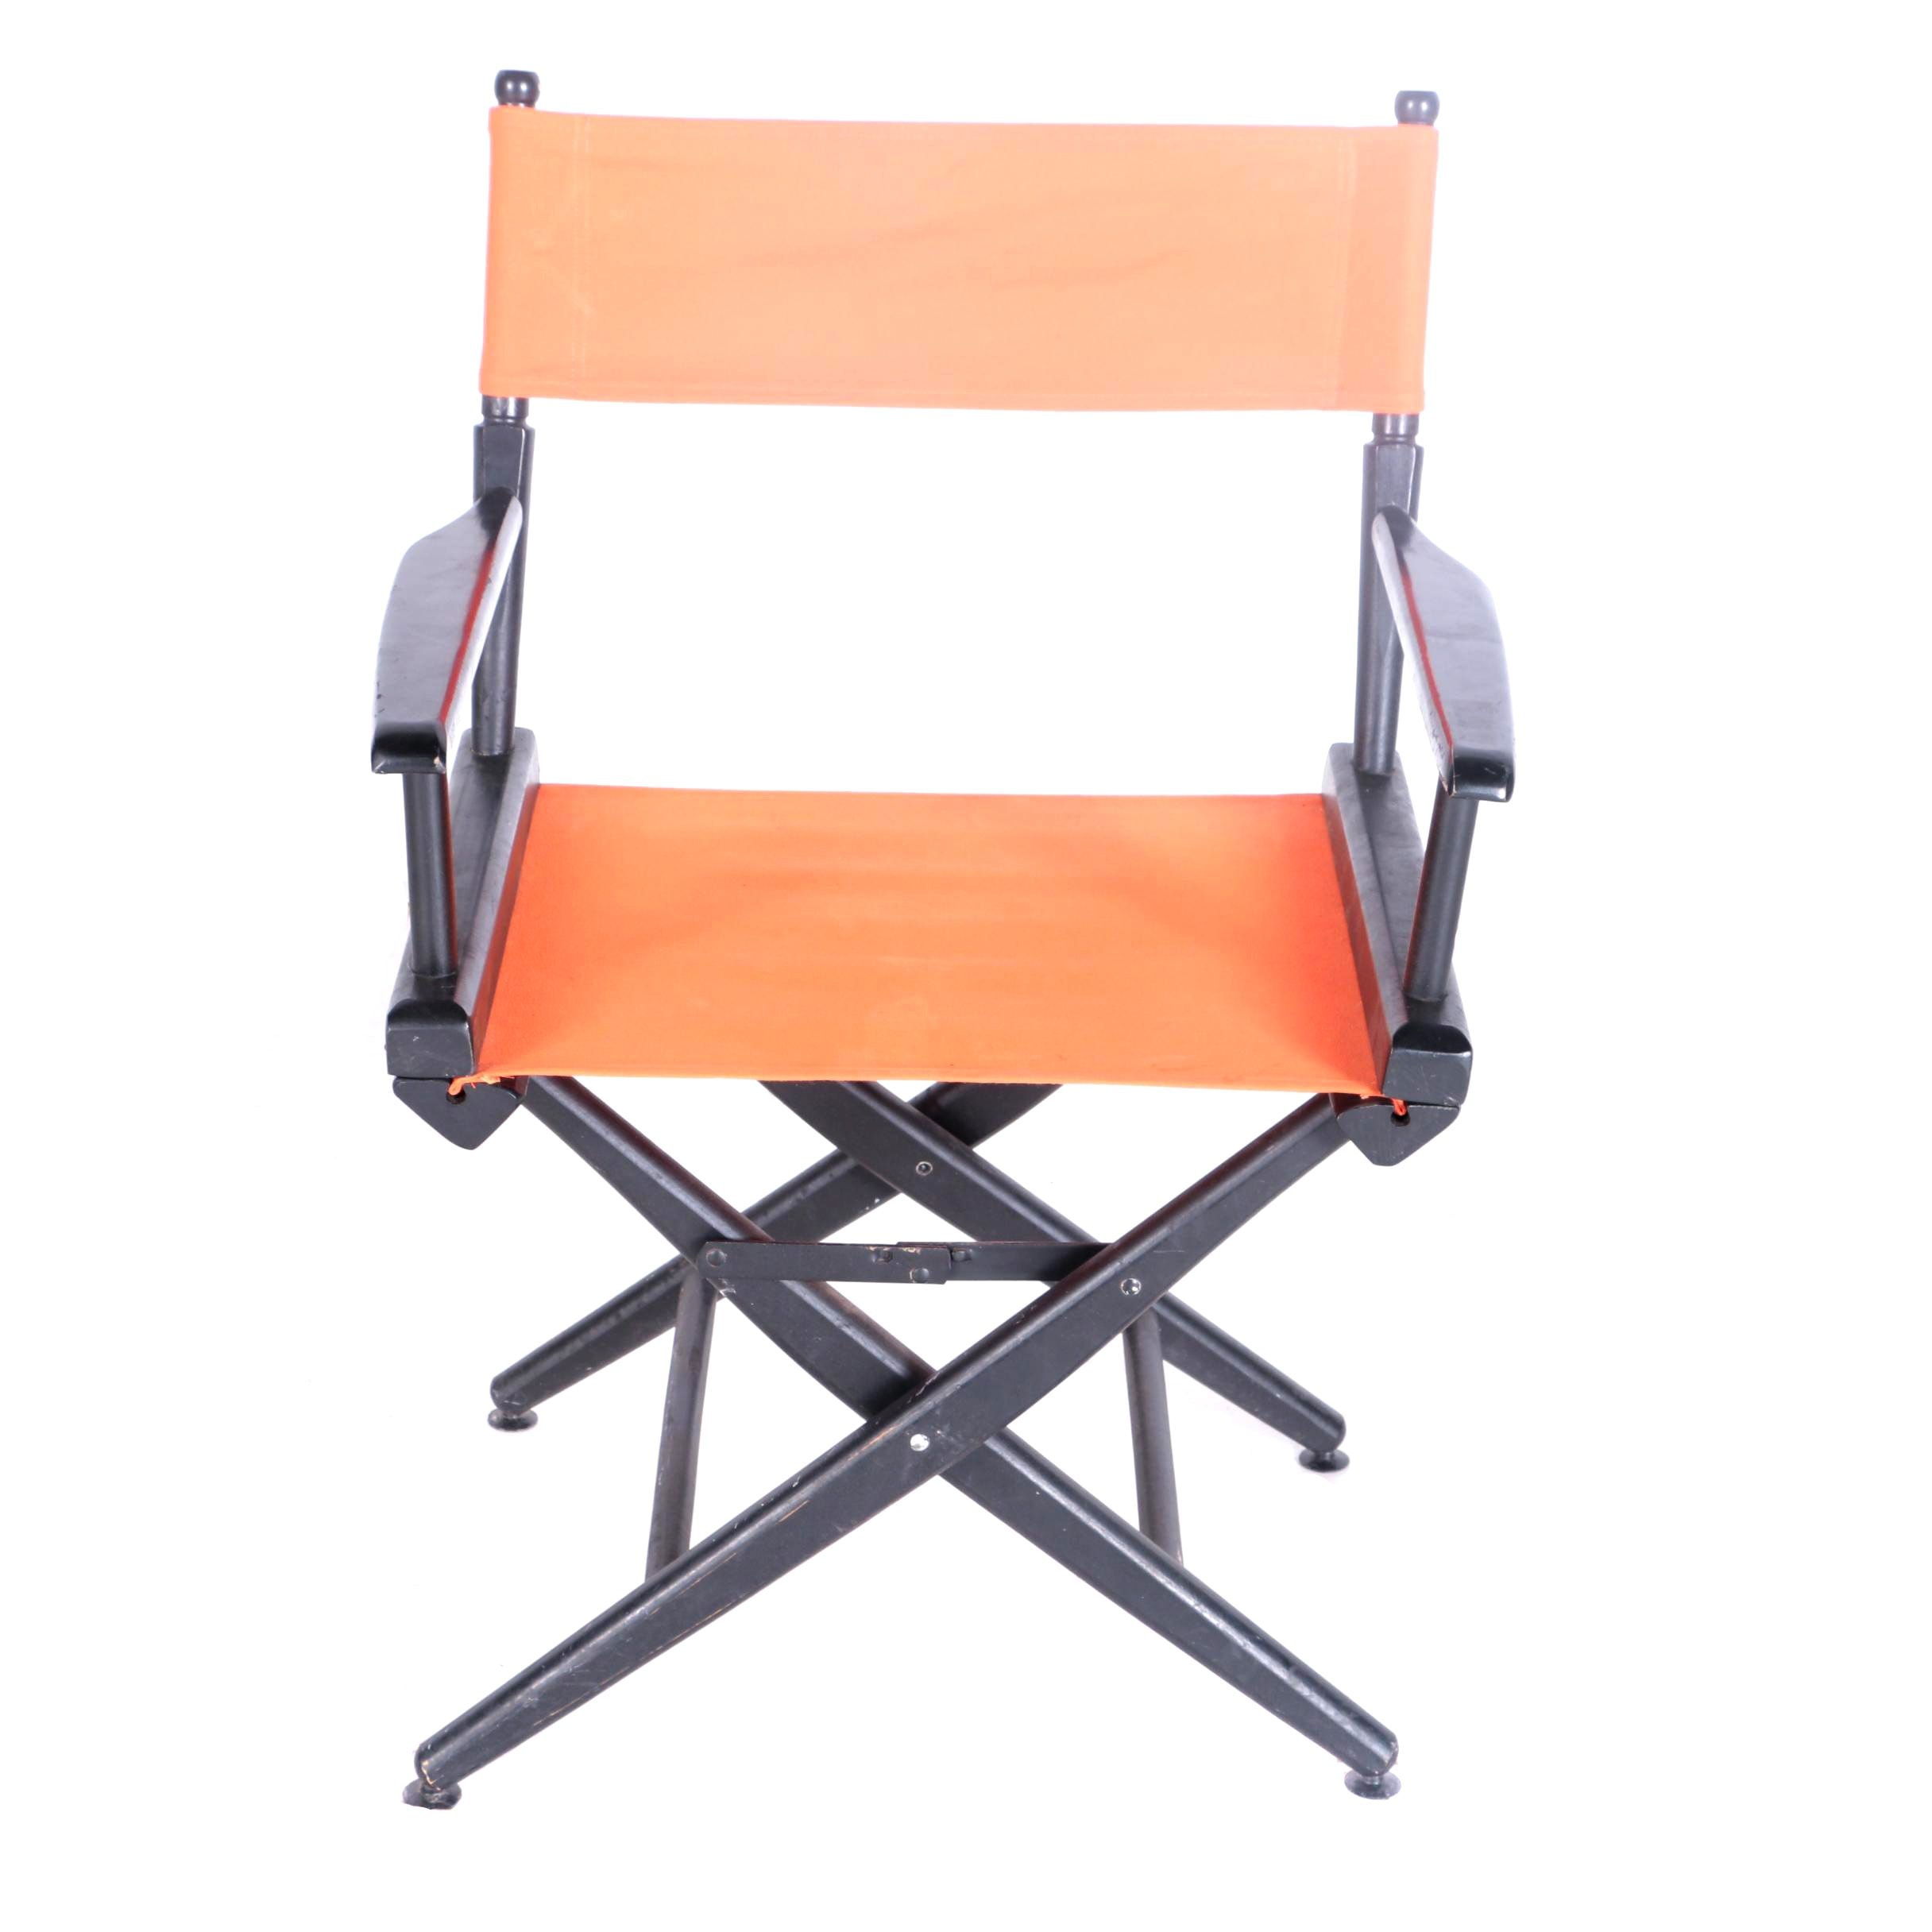 Portable Wooden Folding Chair